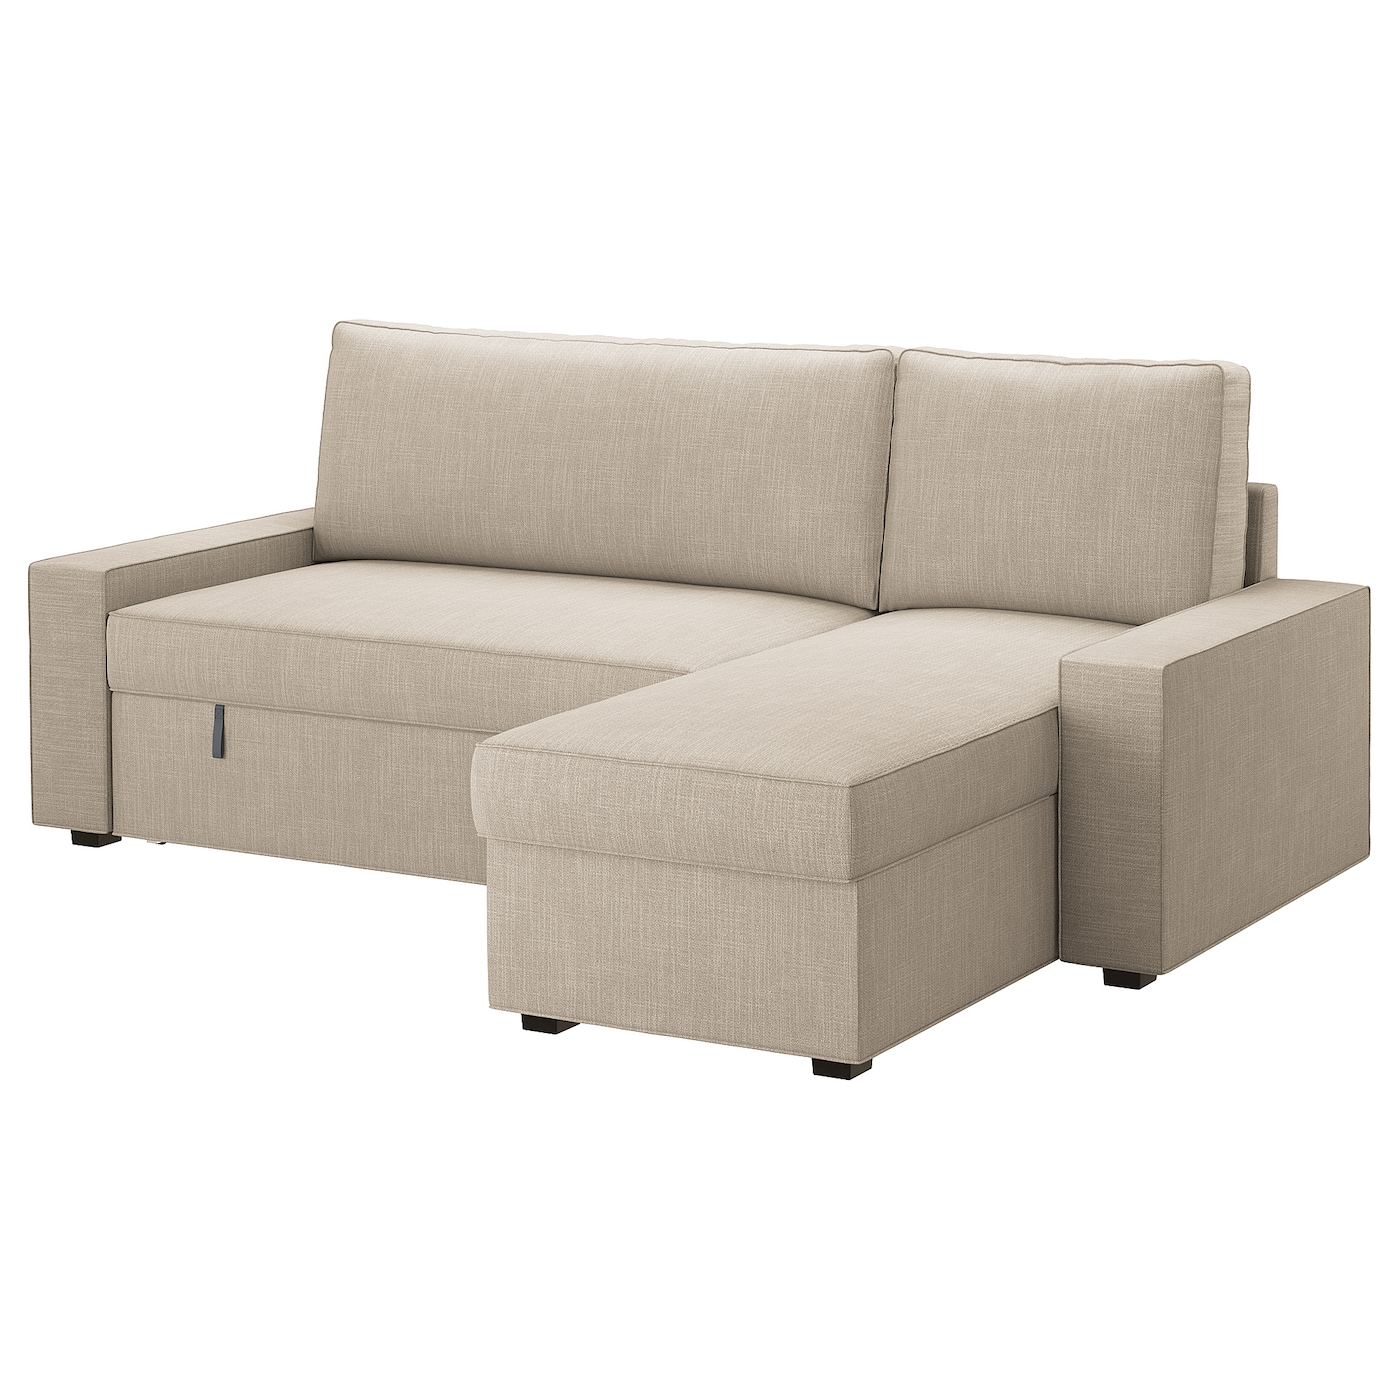 vilasund sofa bed with chaise longue hillared beige ikea